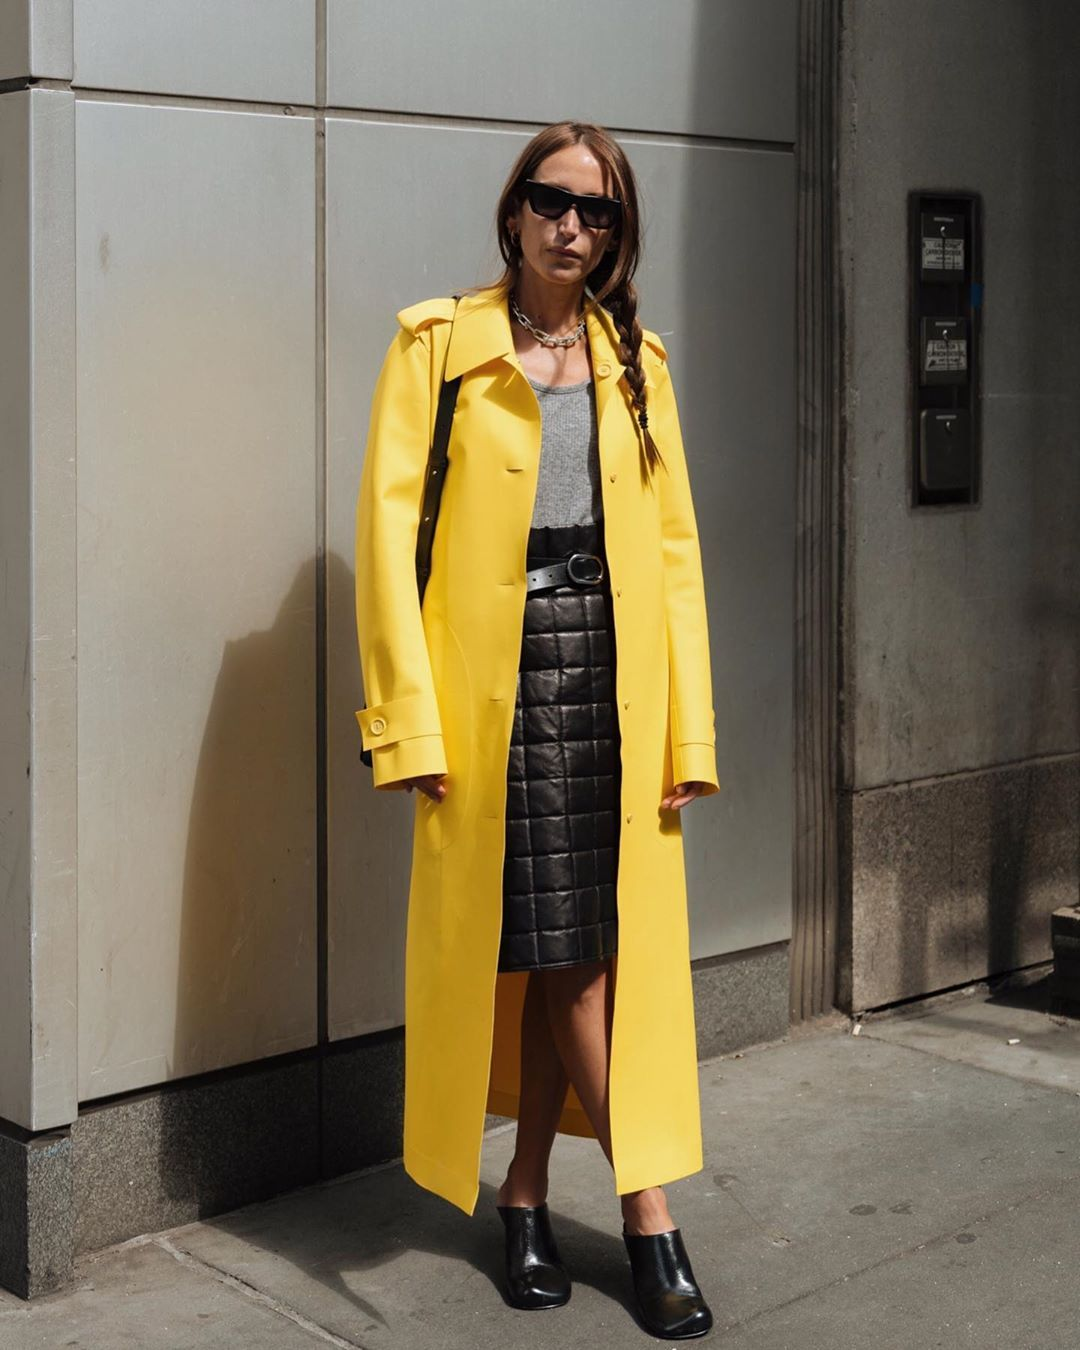 bottega-veneta-yellow-pu-trench-coat-chloe-harrouche-street-style